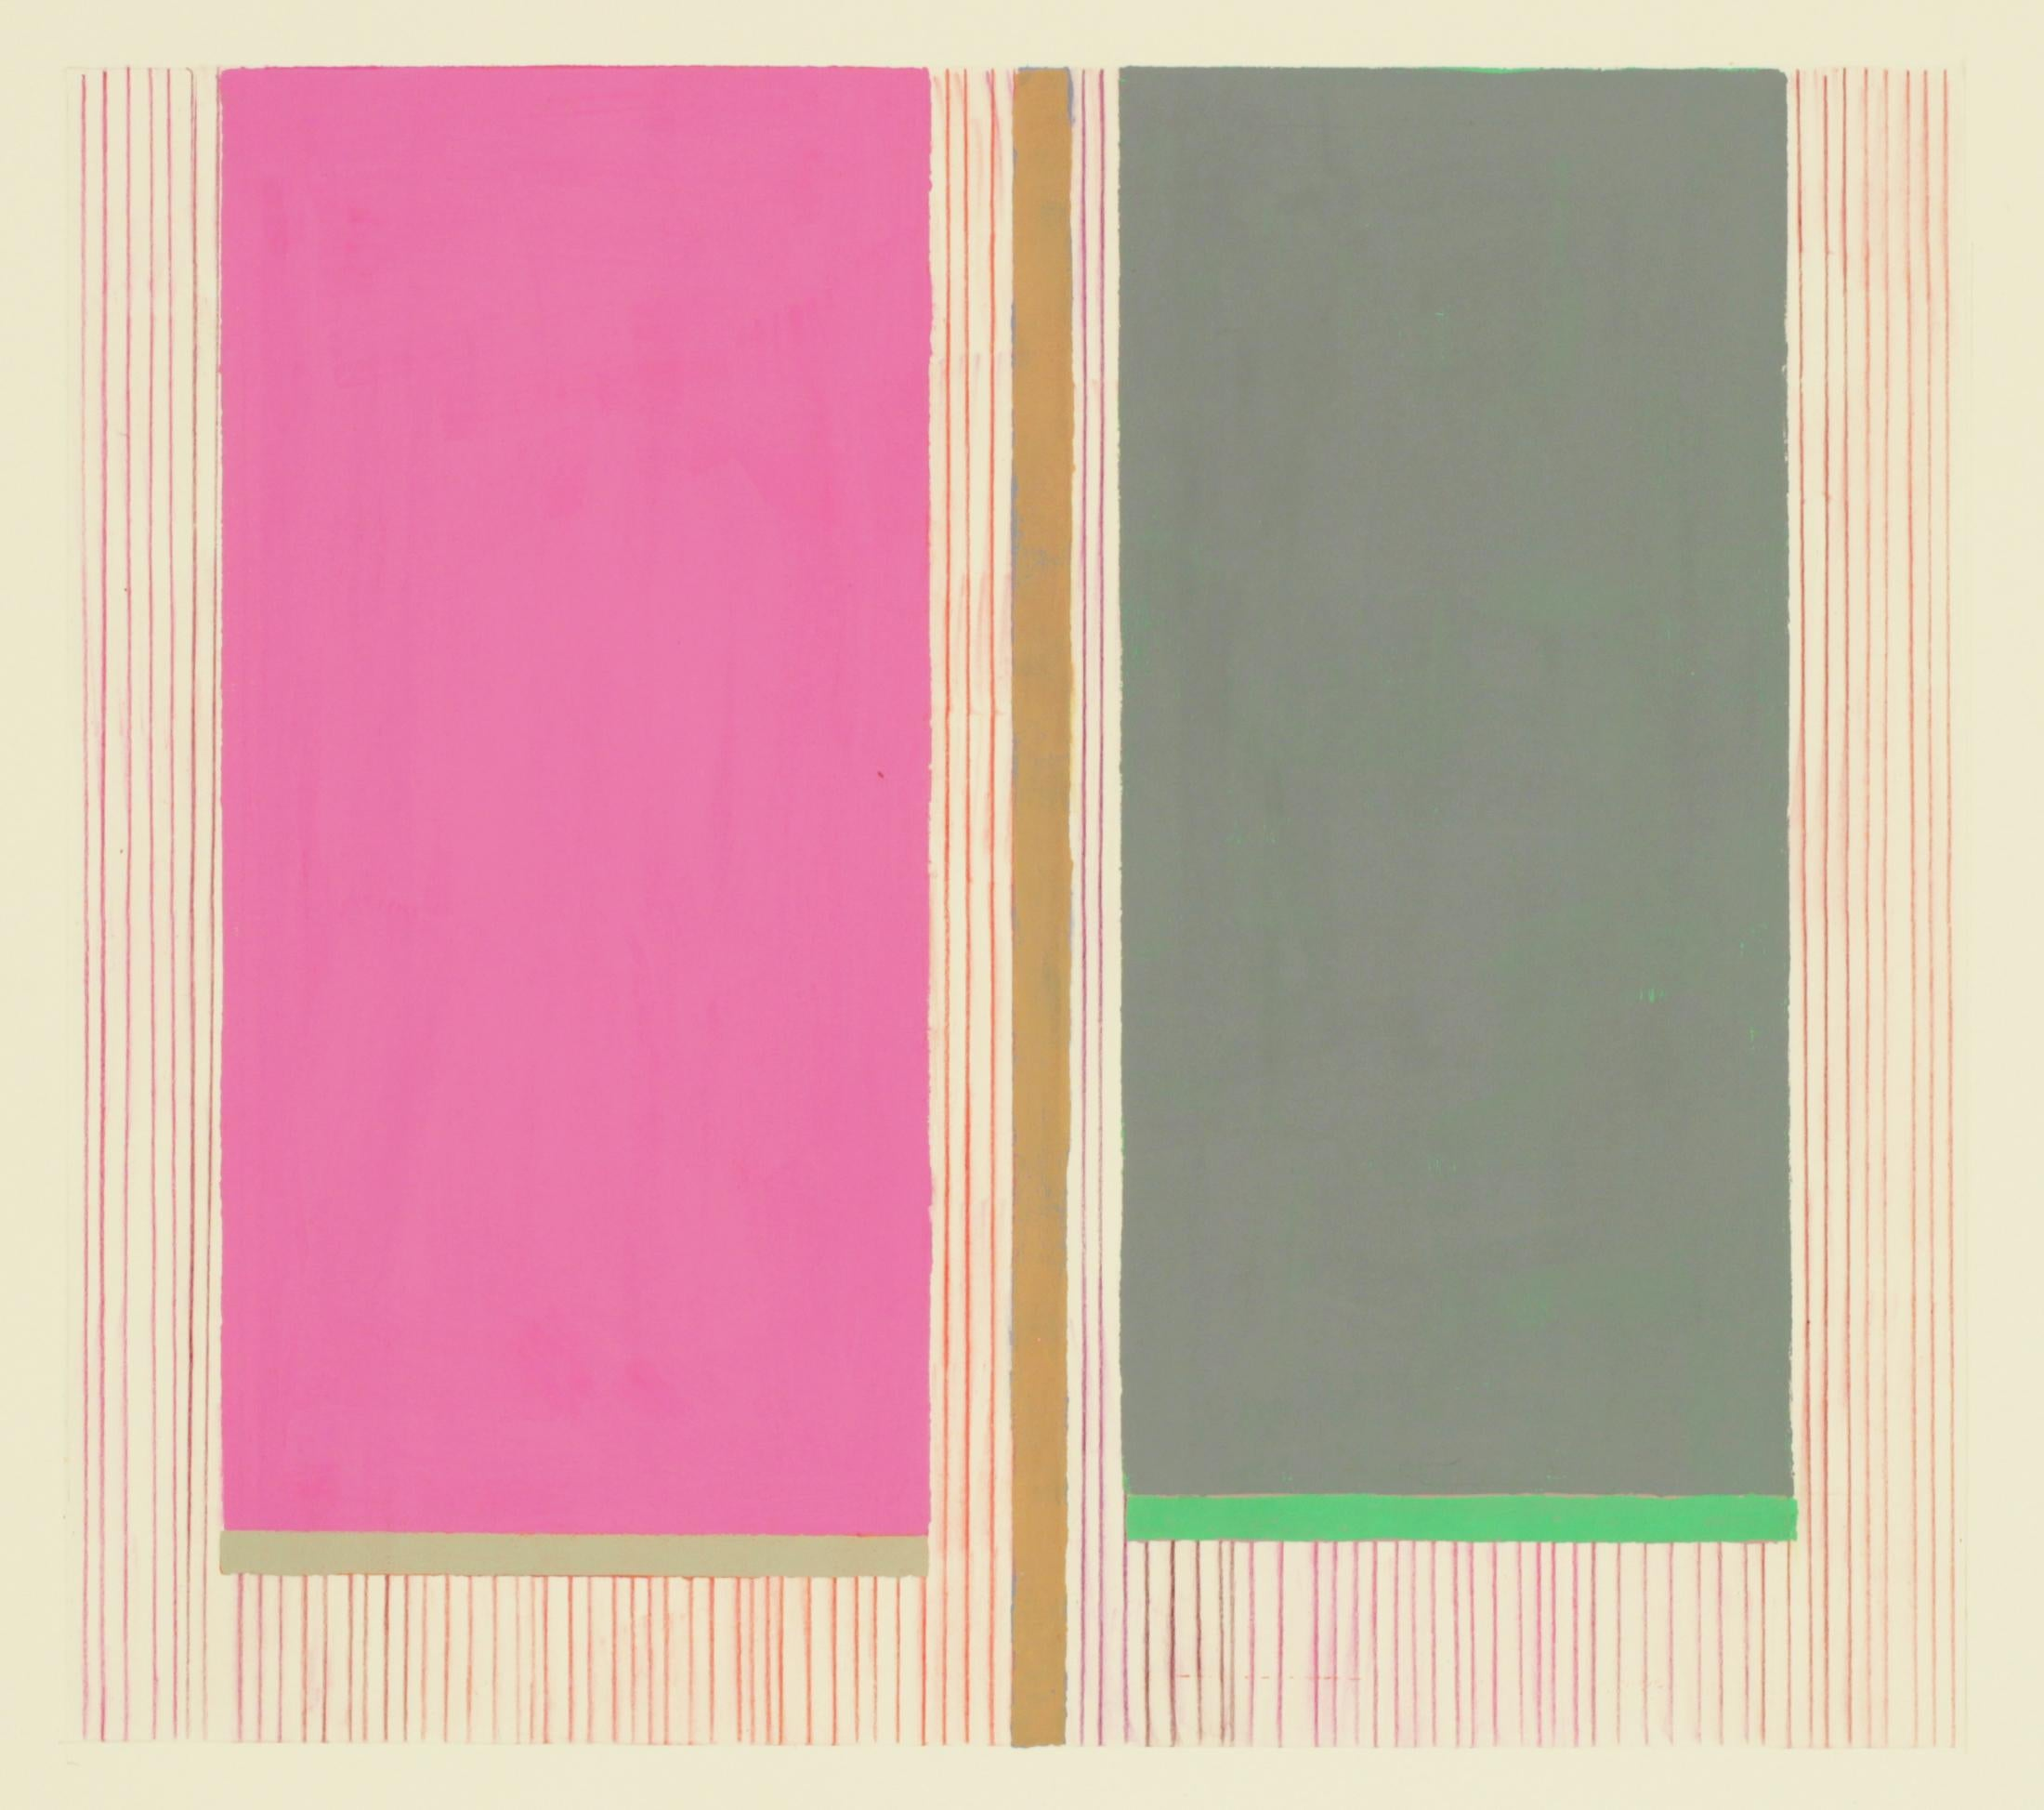 Magenta Gray, Abstract Painting on Paper in Pink, Gray, Green, Beige